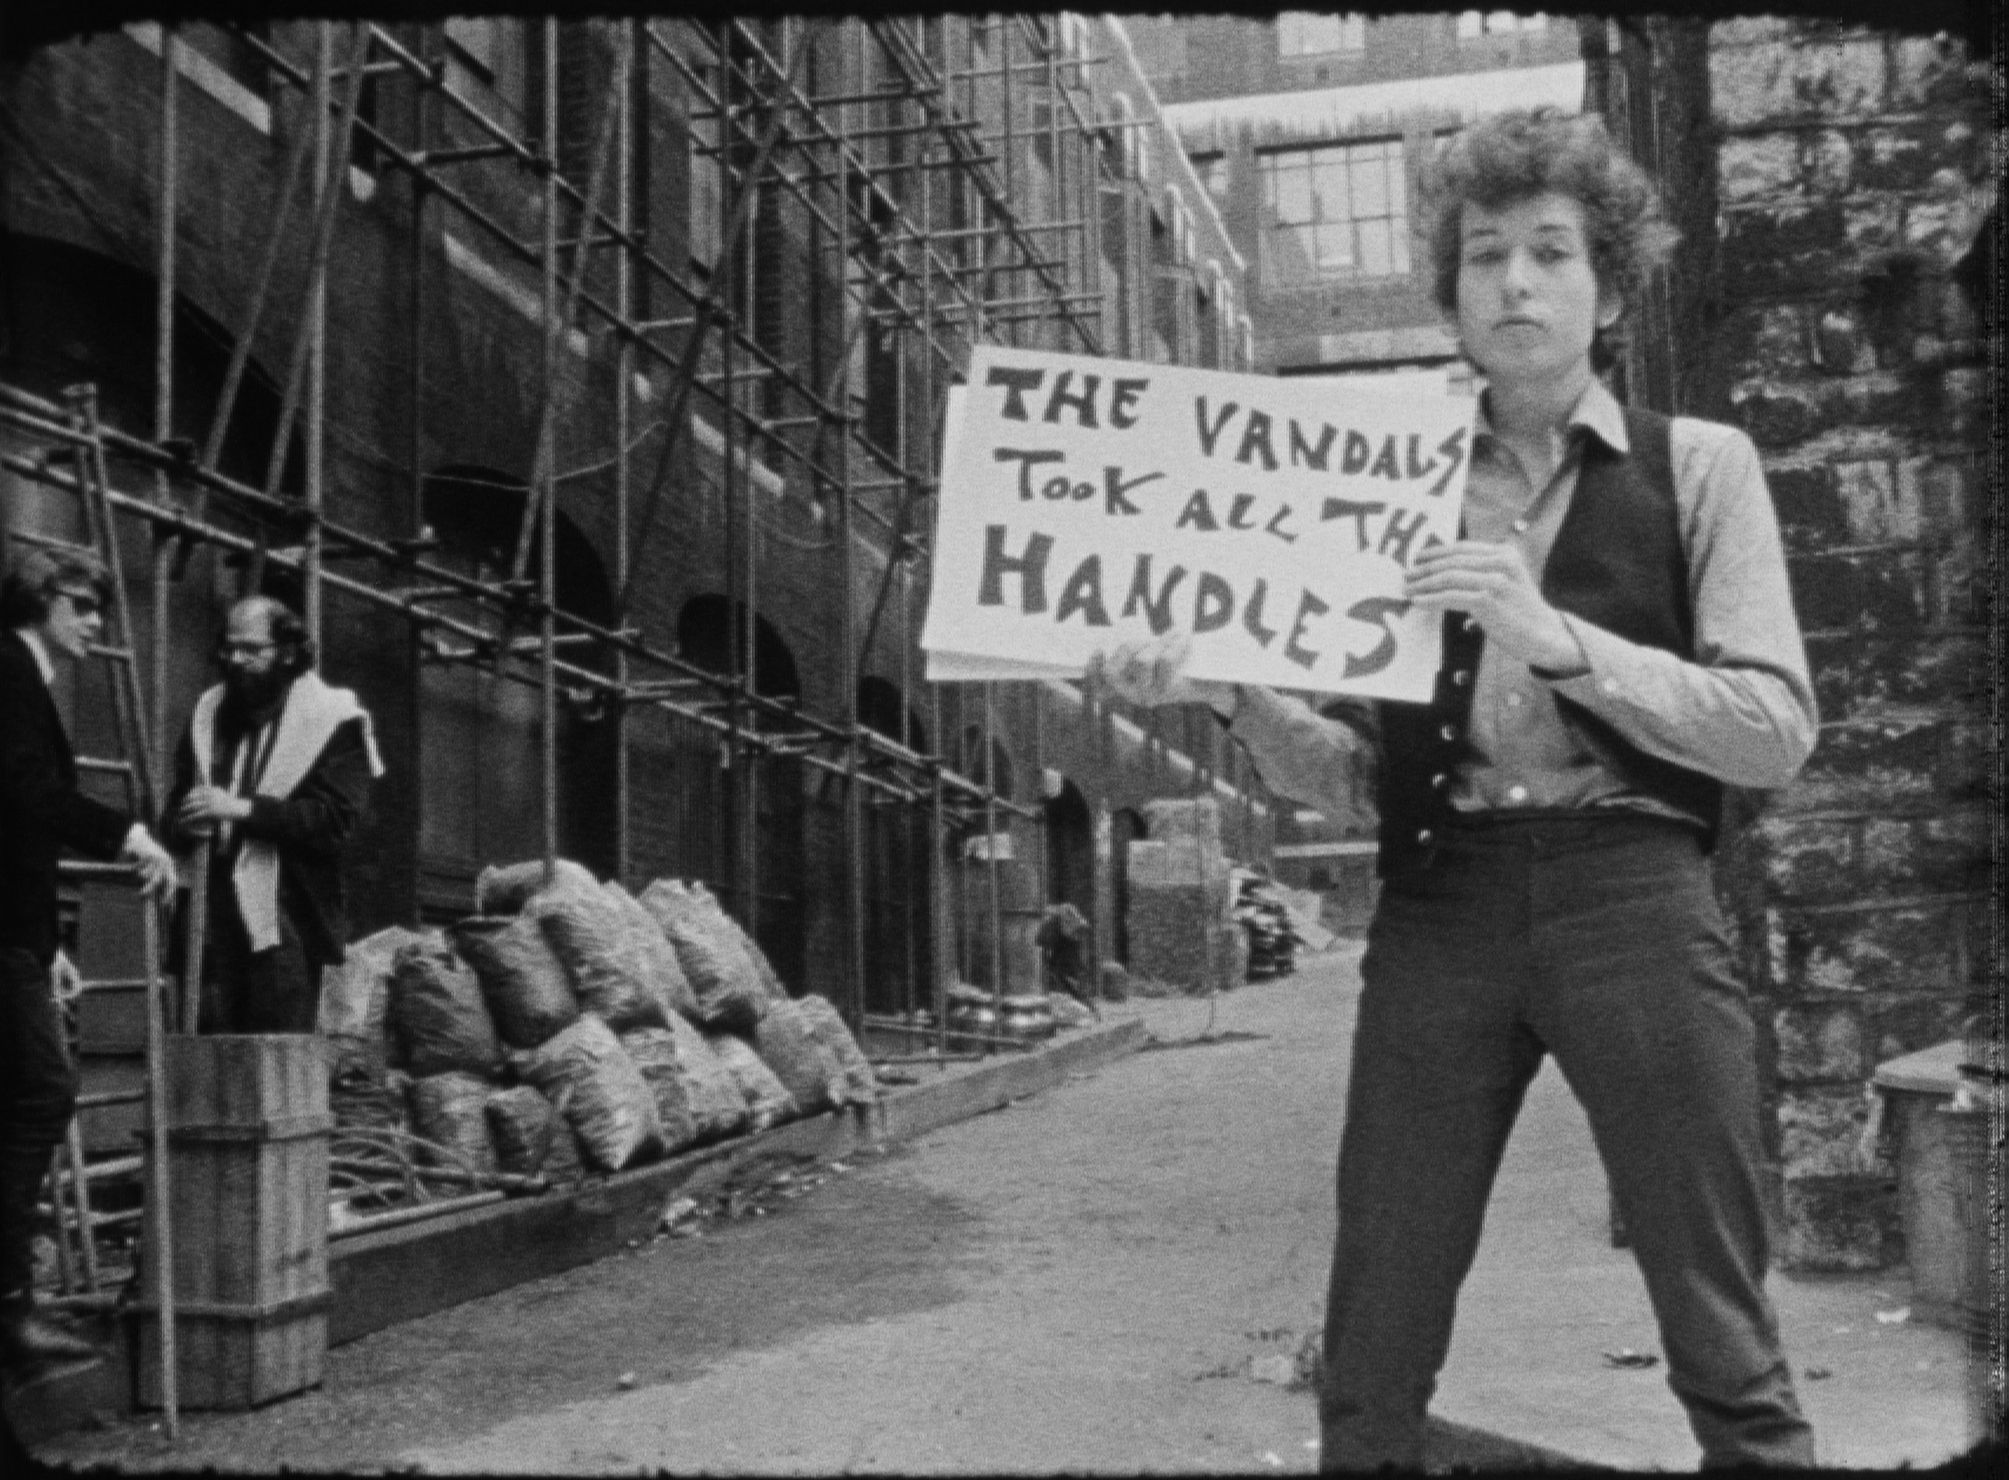 Bob Dylan during the  Subterranean Homesick Blues  scene from Dont Look Back in London, 1965.